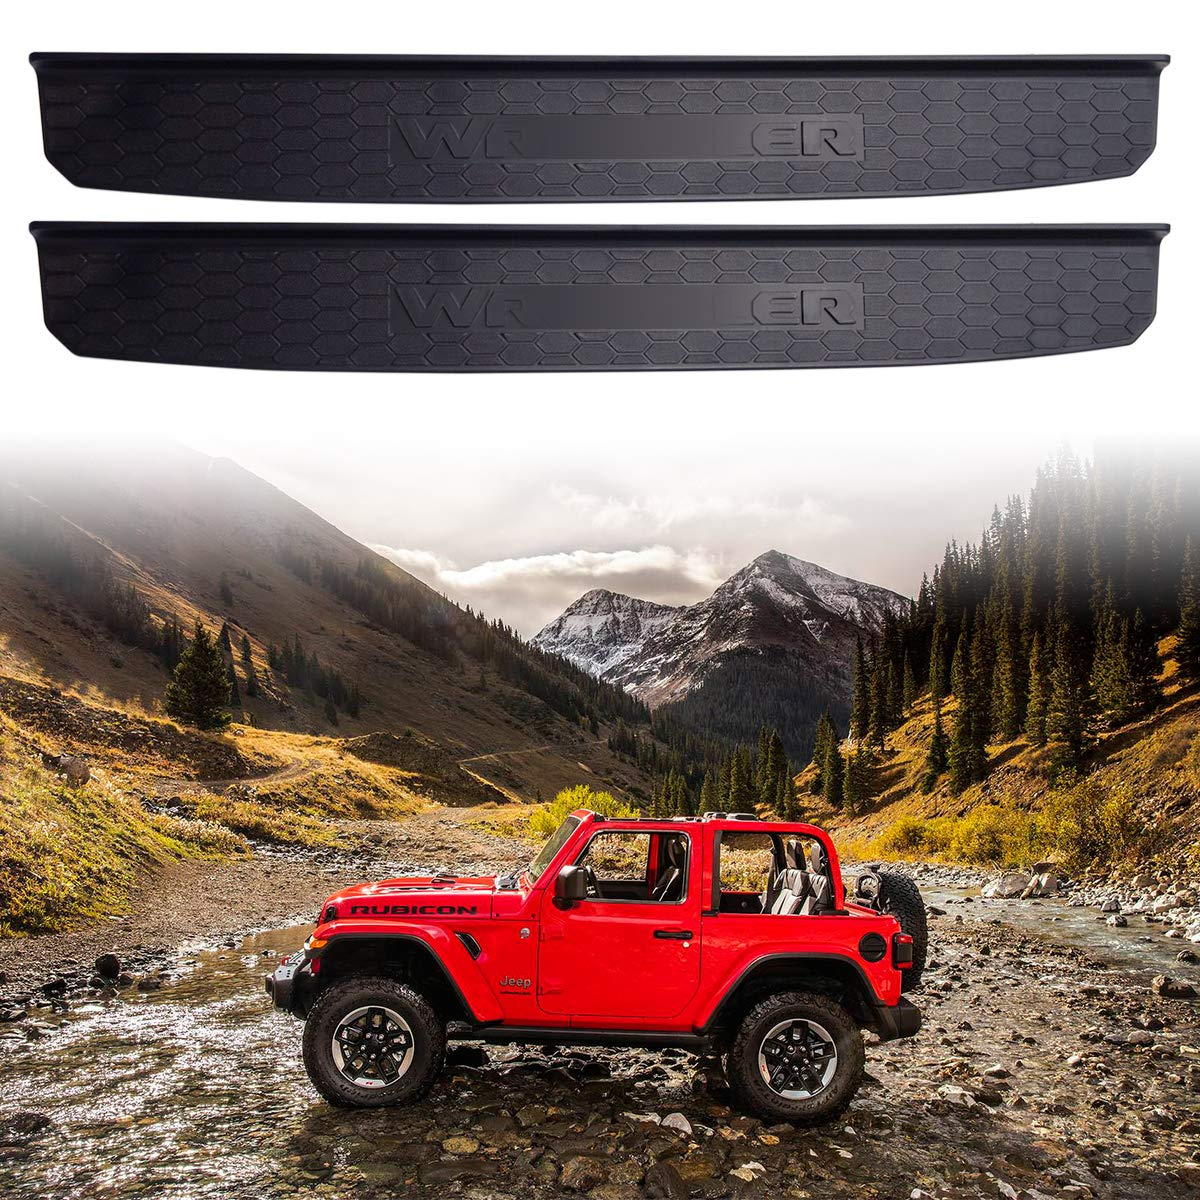 XBEEK 2 Door Sill Guards Entry Guards Fit for 2018 2019 Jeep Wrangler JL ABS Black Molded